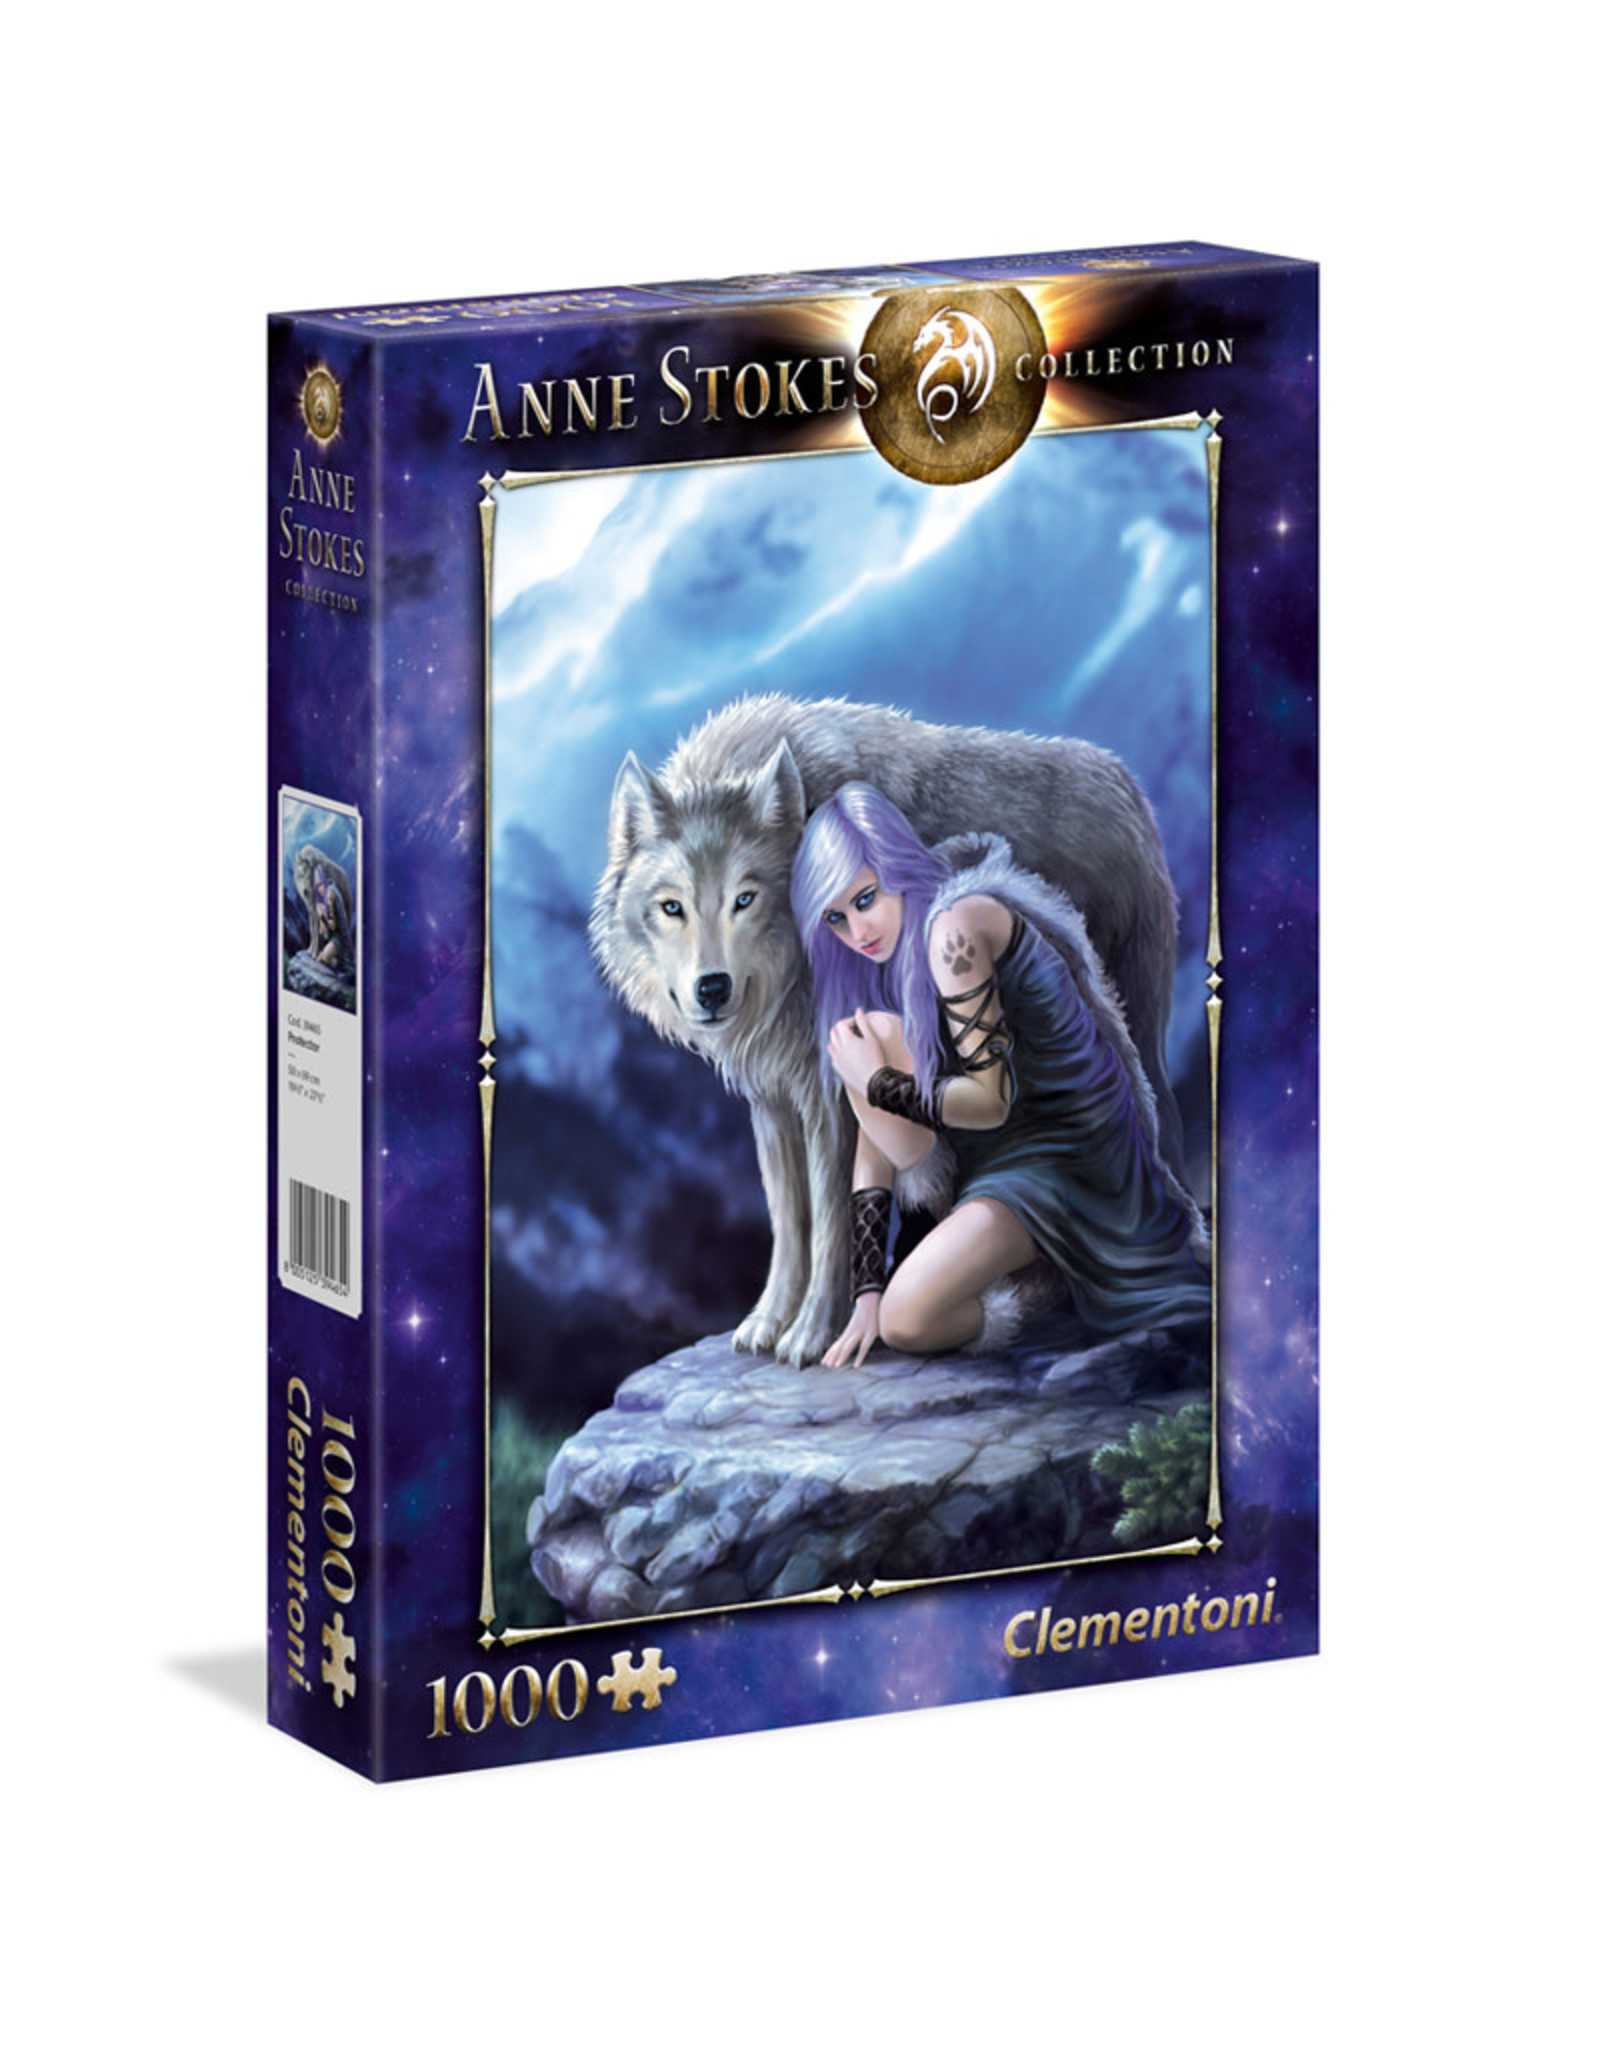 Clementoni Anne Stokes Protector 1000 PCS